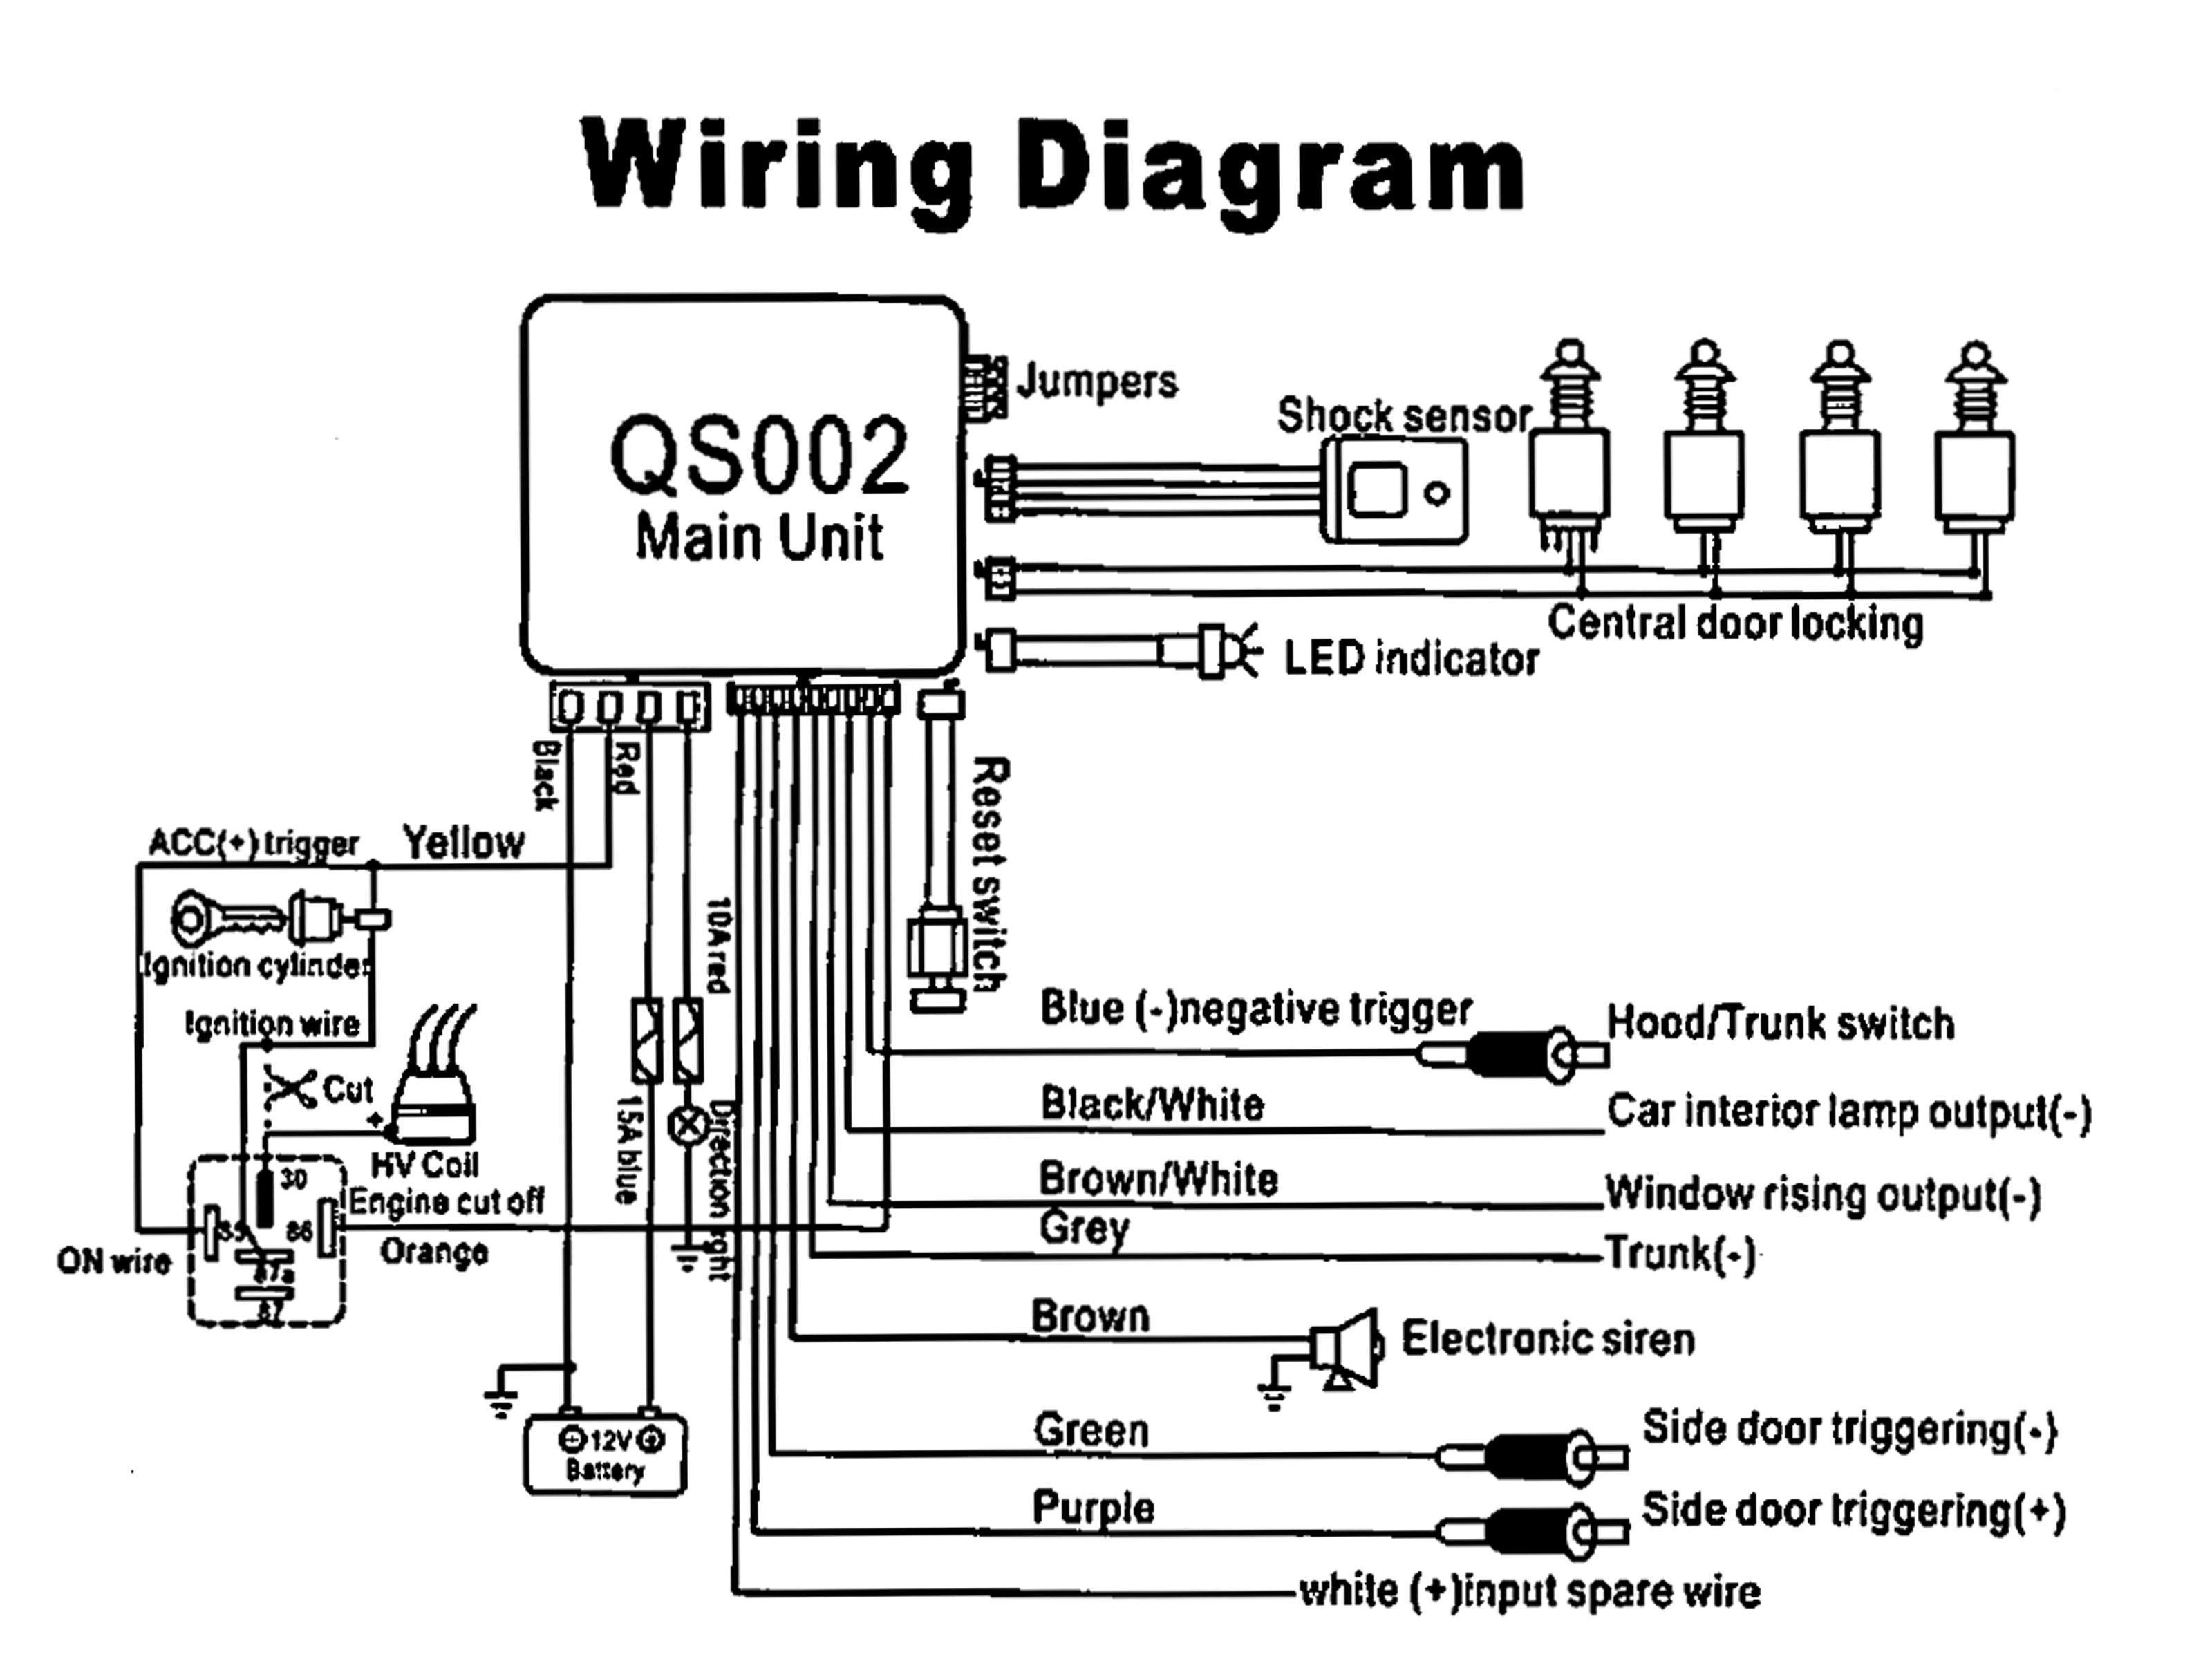 DIAGRAM] Acura Alarm Wiring Diagram FULL Version HD Quality Wiring Diagram  - GENUENGINE.ETOILEDUMARAIS.FRDiagram Database